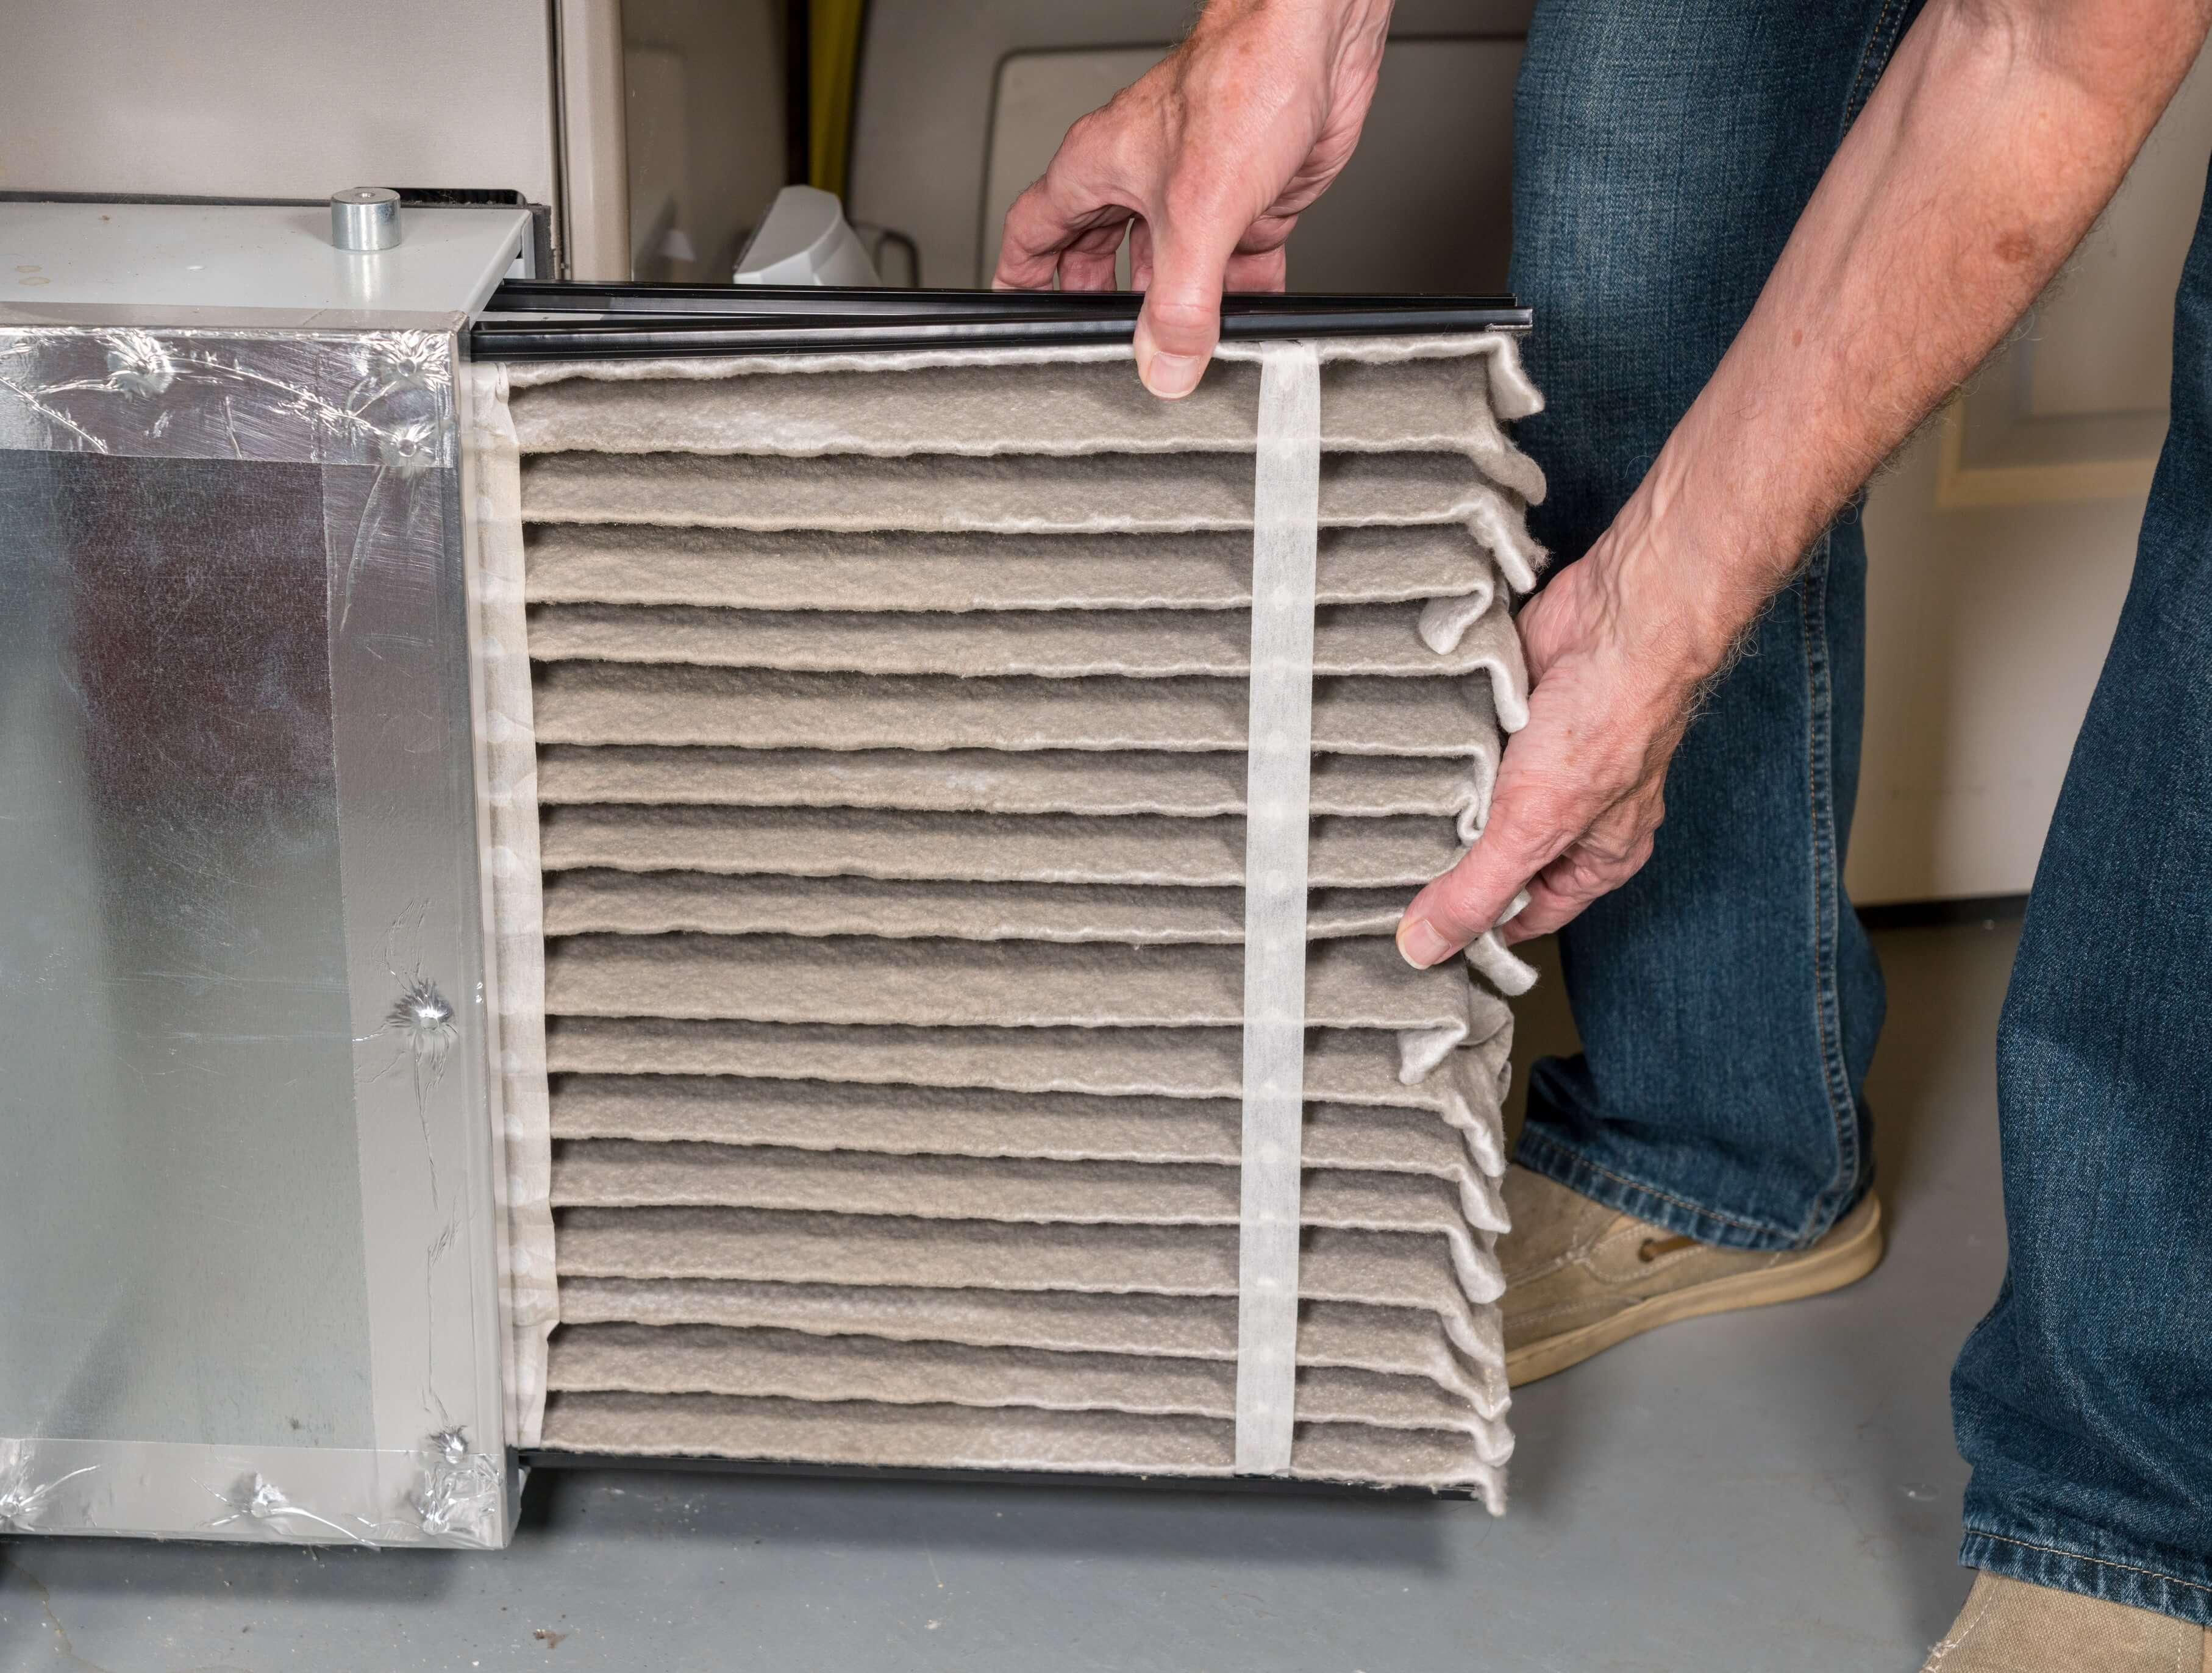 A Furnace Replacement Could Improve Your Health